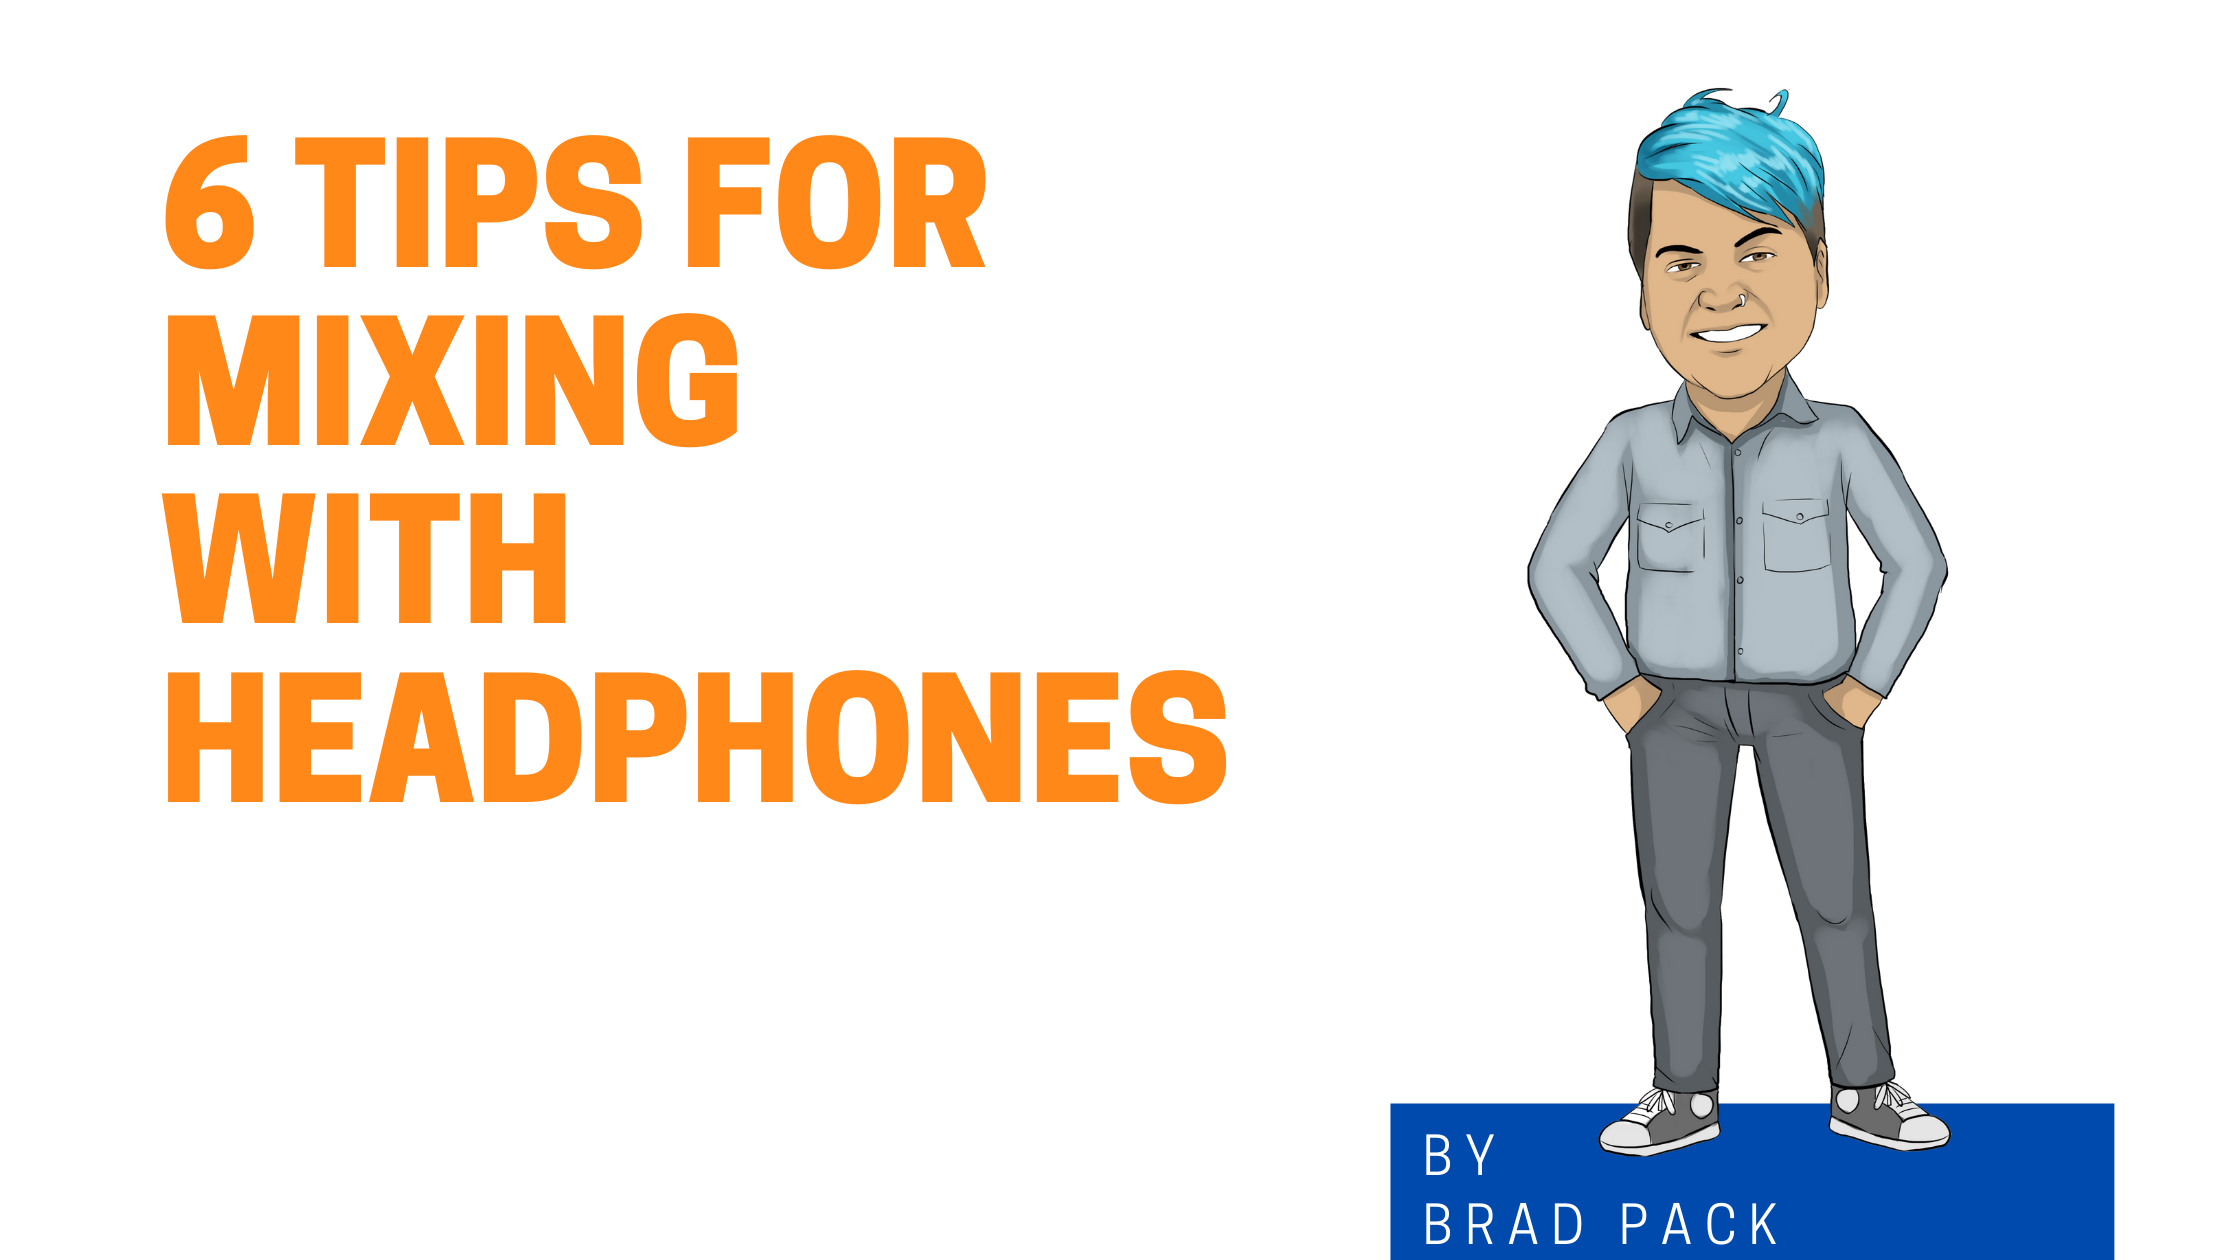 6 Tips for Mixing with Headphones image